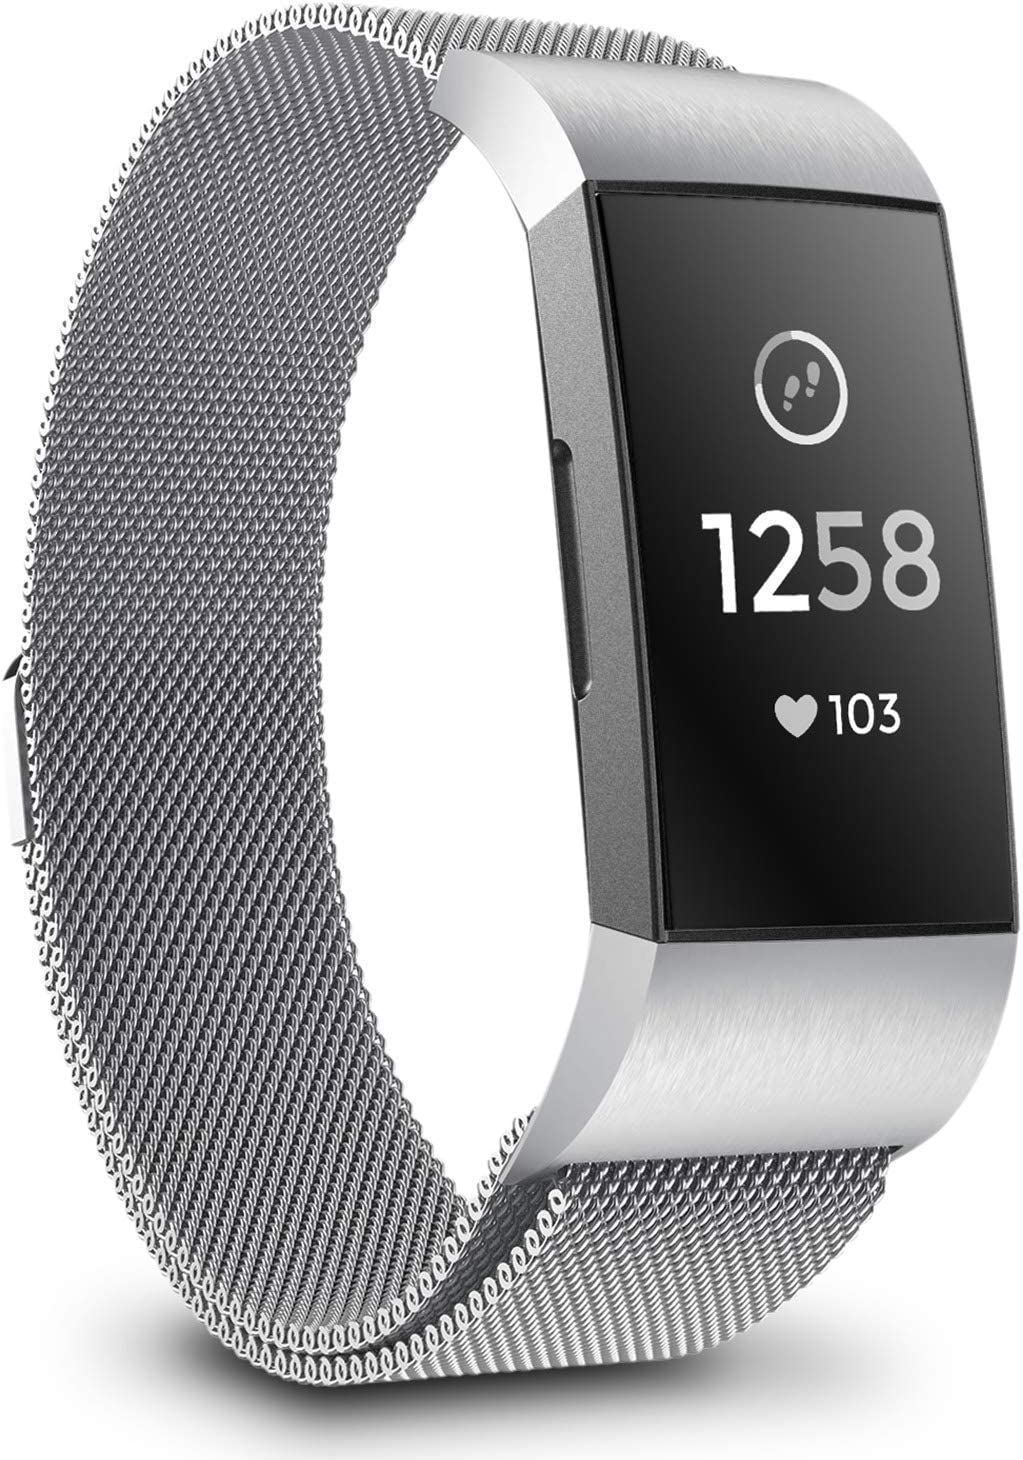 Large, Silver+Black+Rose Gold Stainless Steel Metal Lock Replacement Wristban with Unique Magnet Clasp Valband 3 Pack Replacement Bands Compatible with Fitbit Charge 2